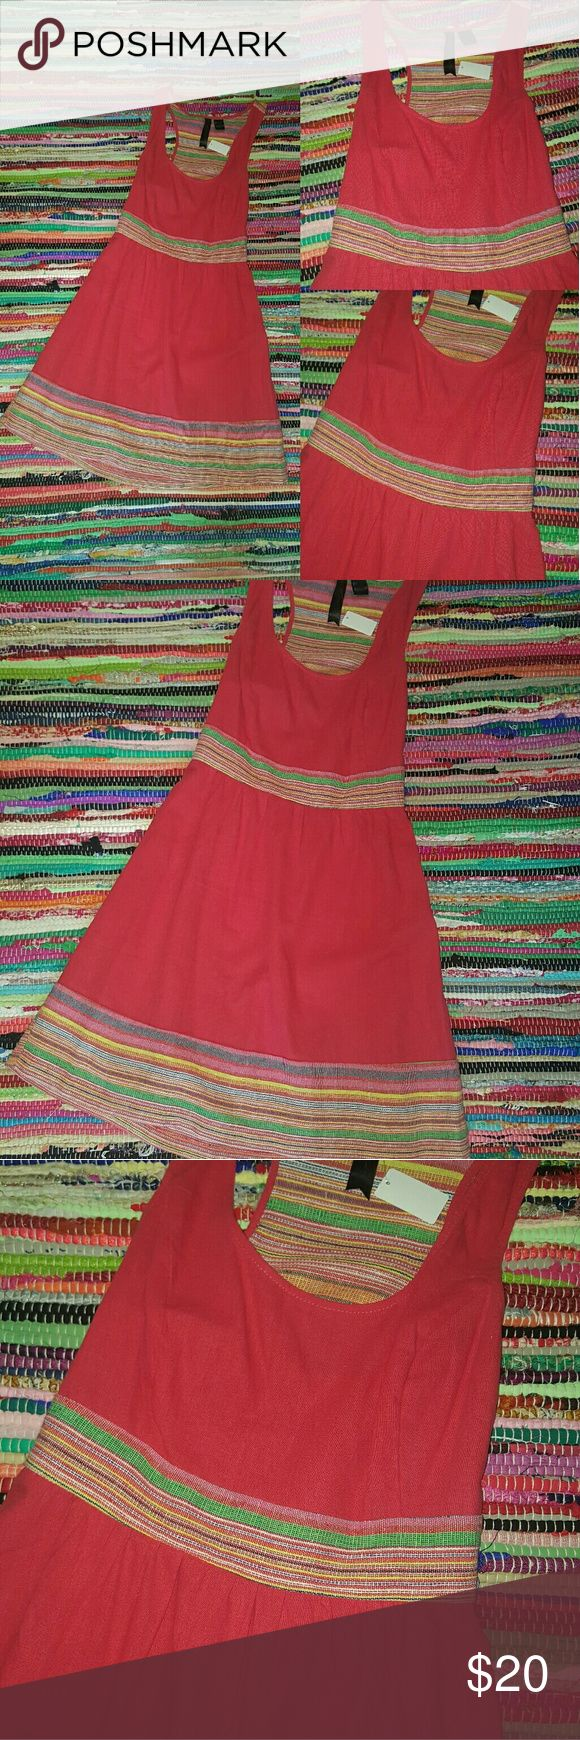 Anthropology dress by Petticoat alley Red This dress is in excellent condition the bands of striping consist of blue, green, white, yellow, orange The most perfect picnic dress! Anthropologie Dresses